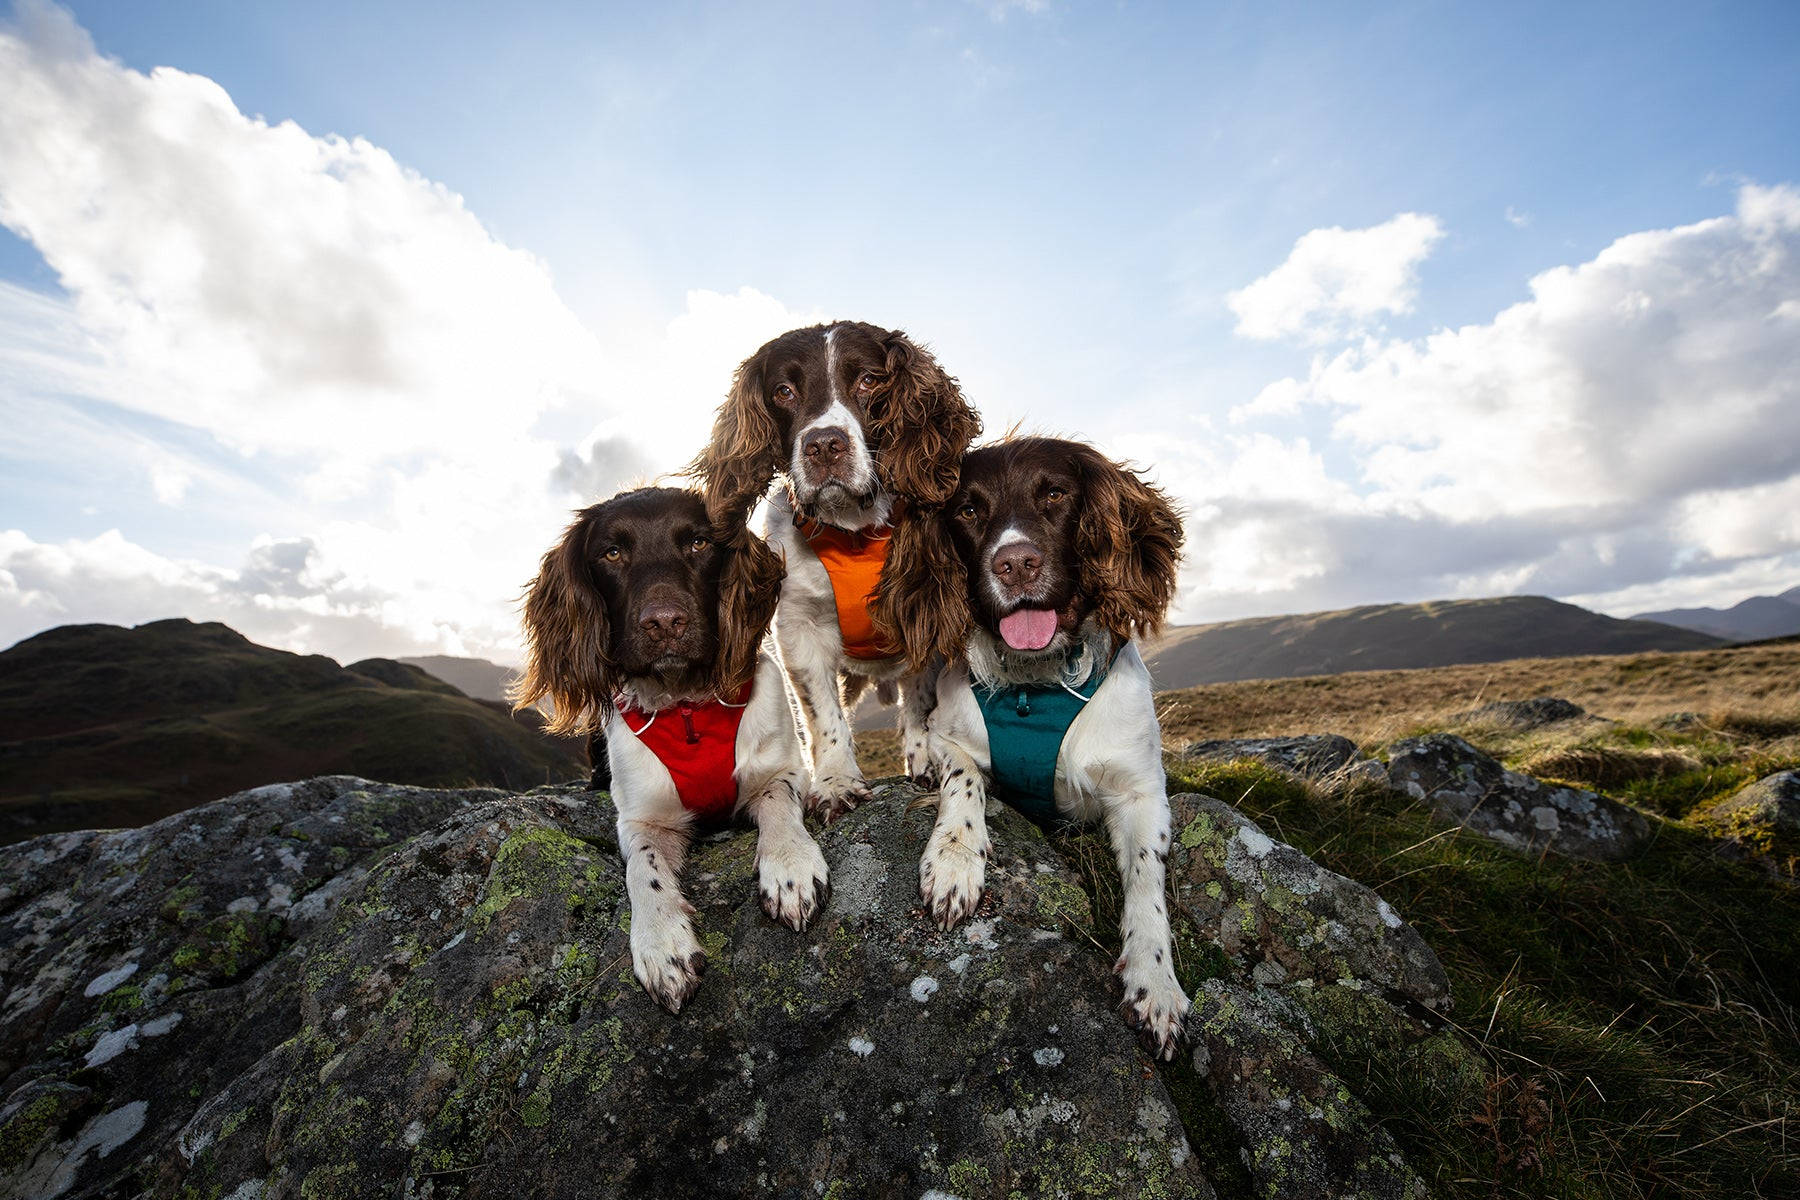 Kerry's three dogs in Ruffwear Front Range everyday padded dog harnesses laying side by side on rock.